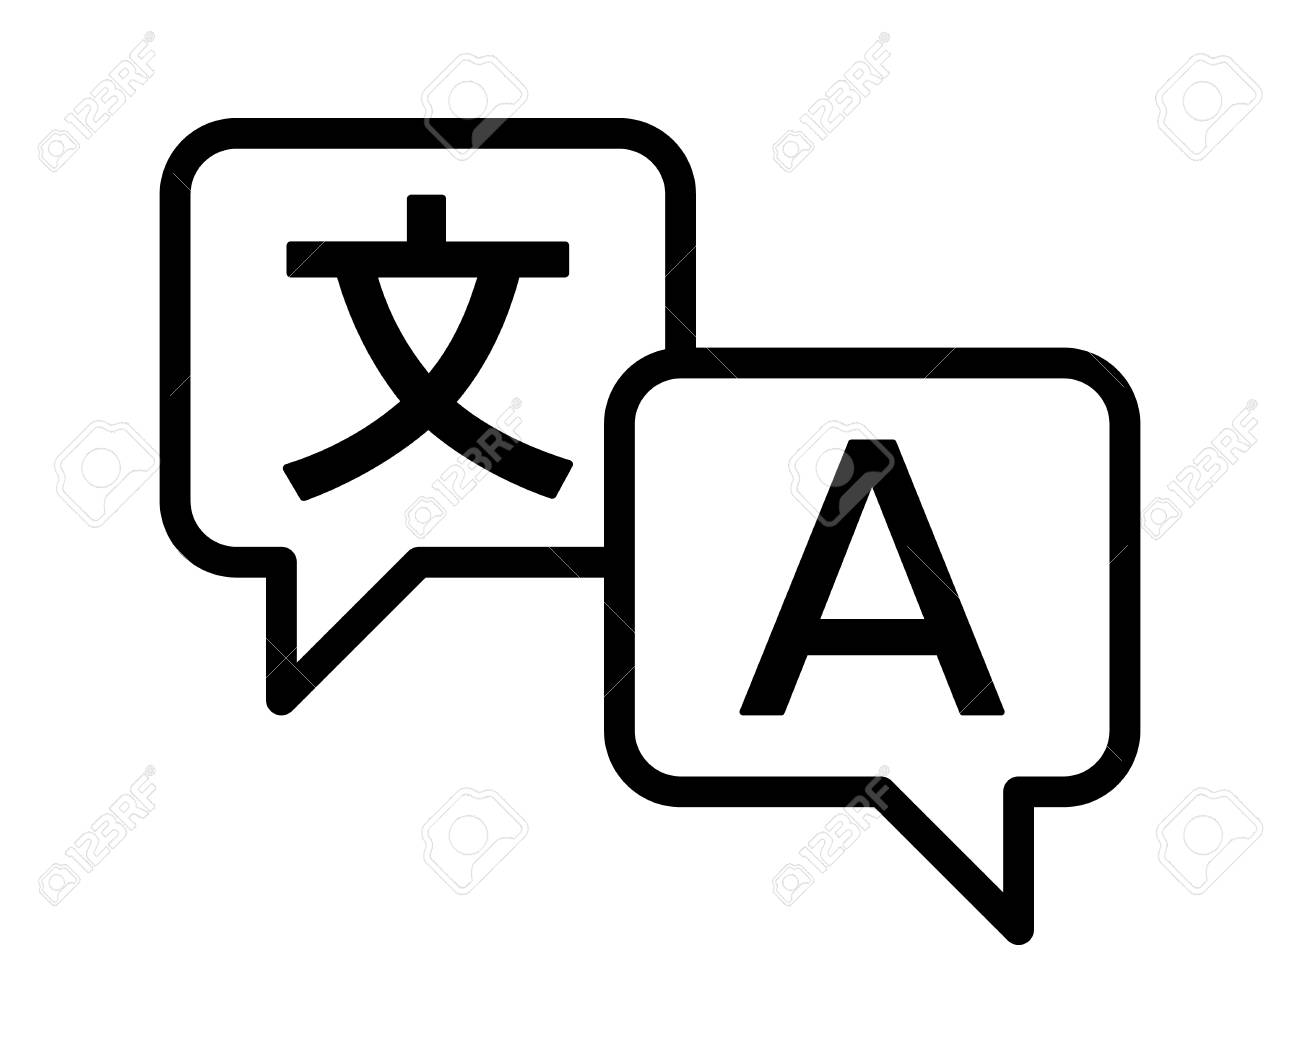 Language translation or translate service line art vector icon for apps and websites - 88619457